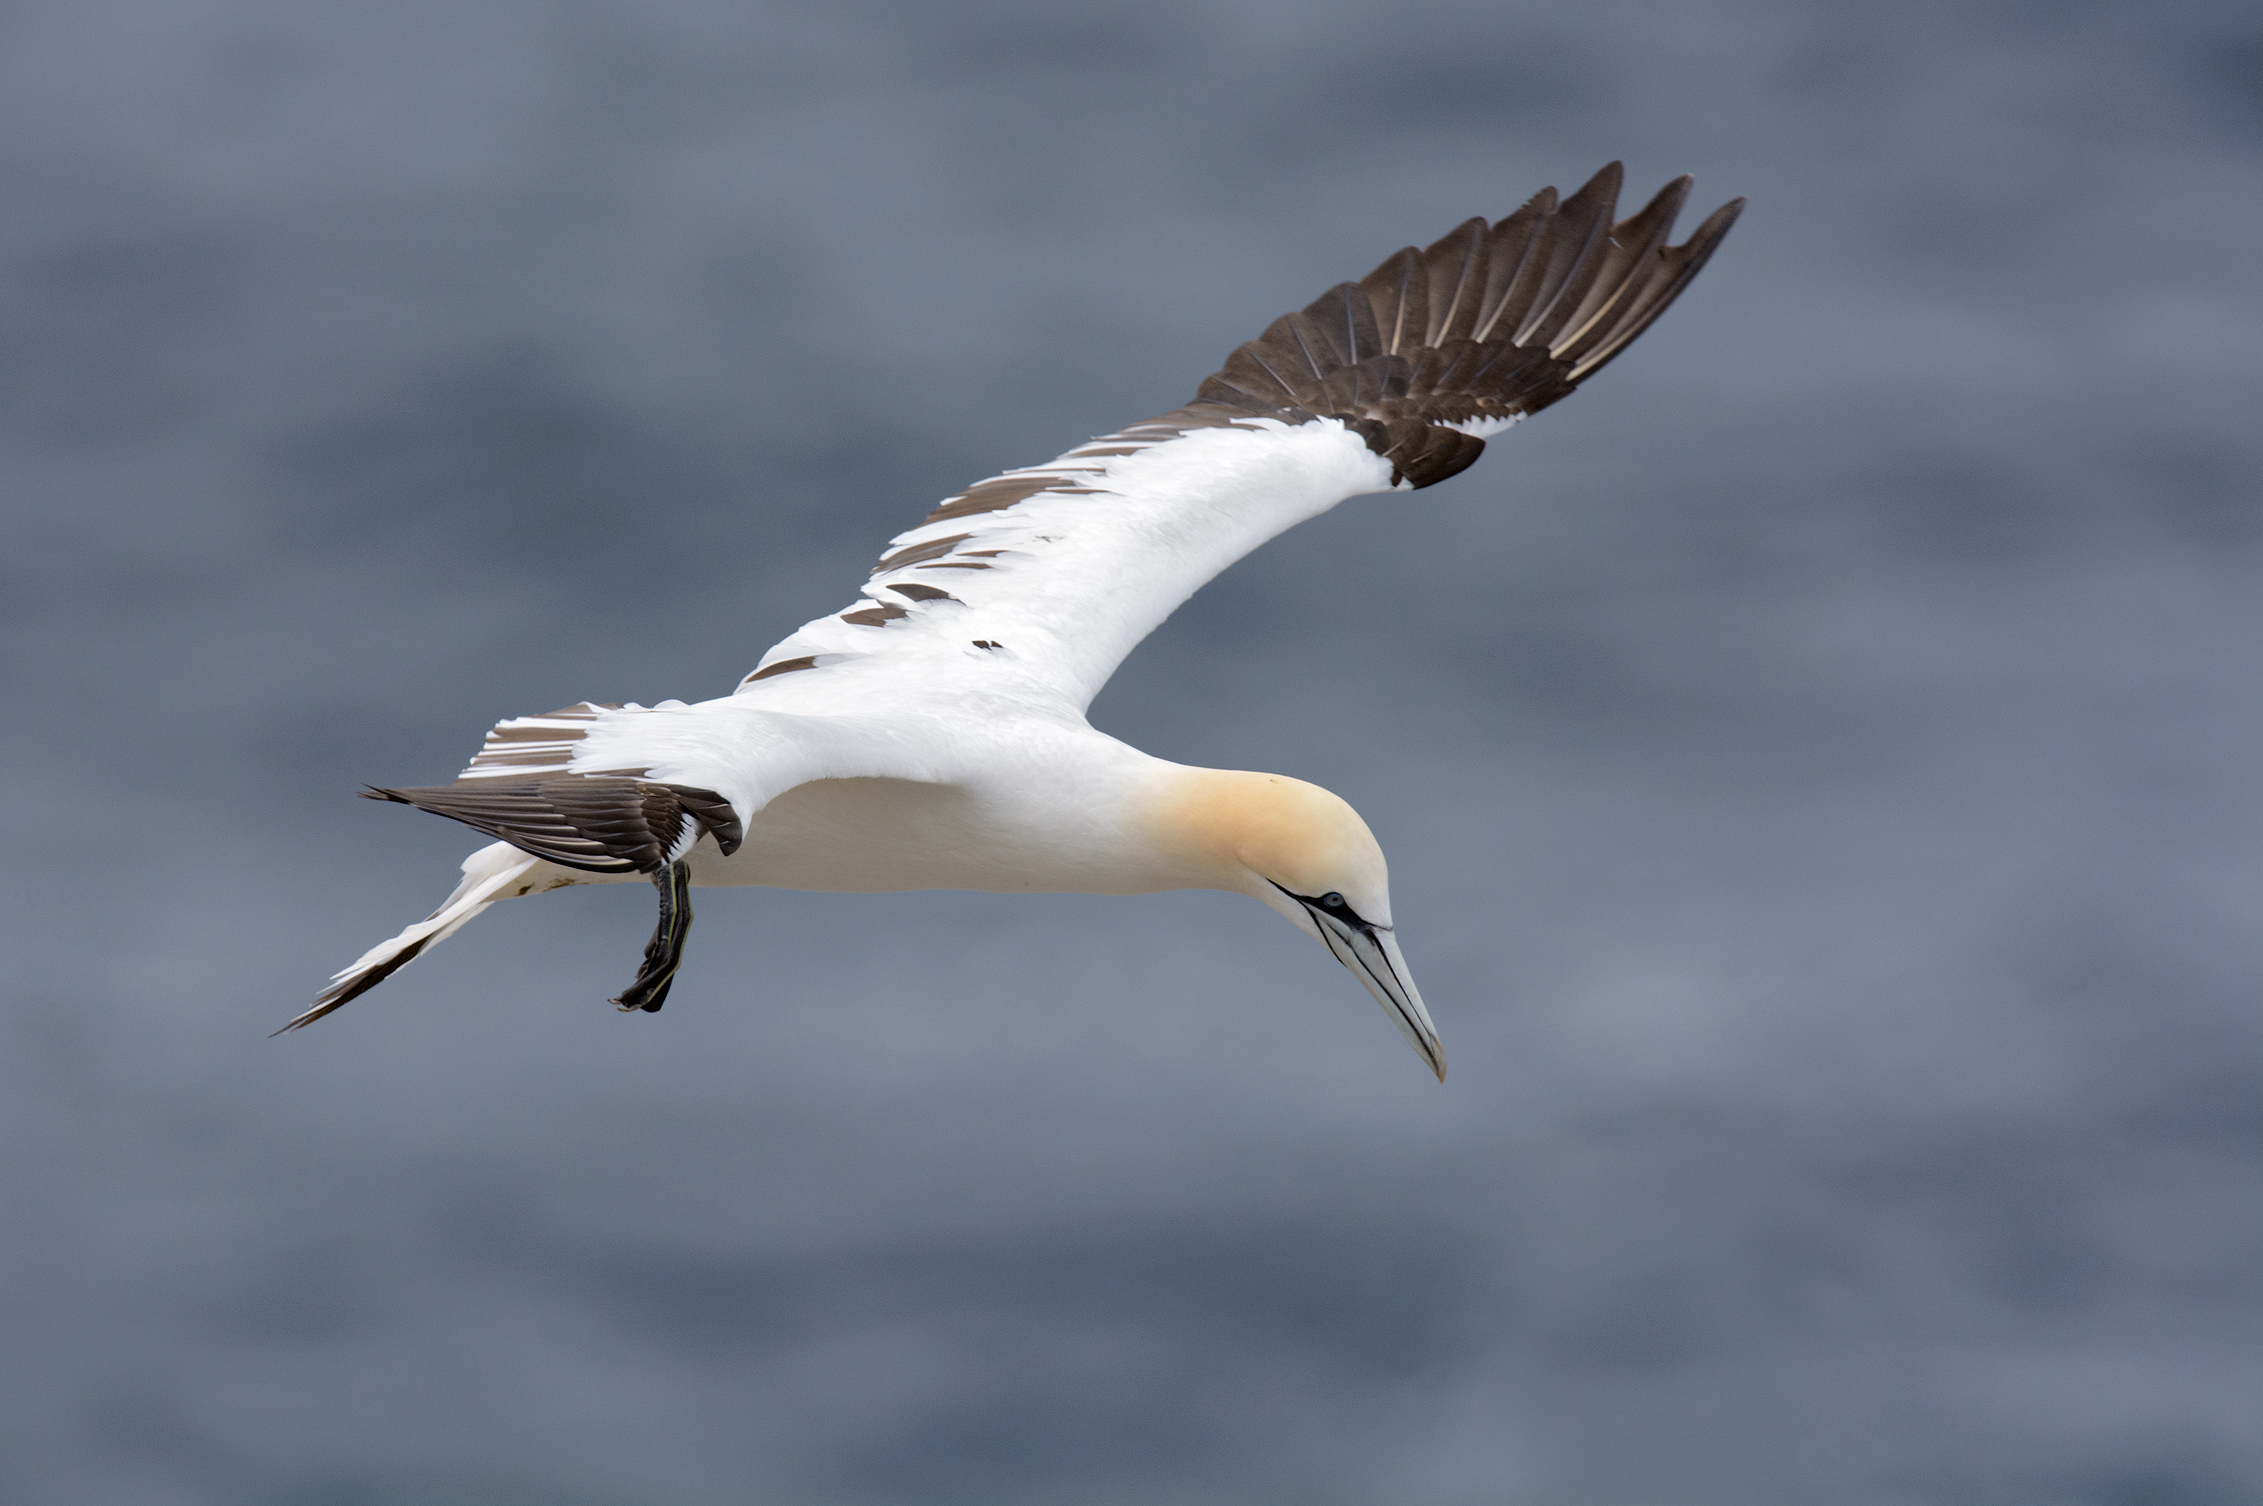 This one still has a few dark feathers in its wings. Gannets will reach full plumage in their fourth to fifth year